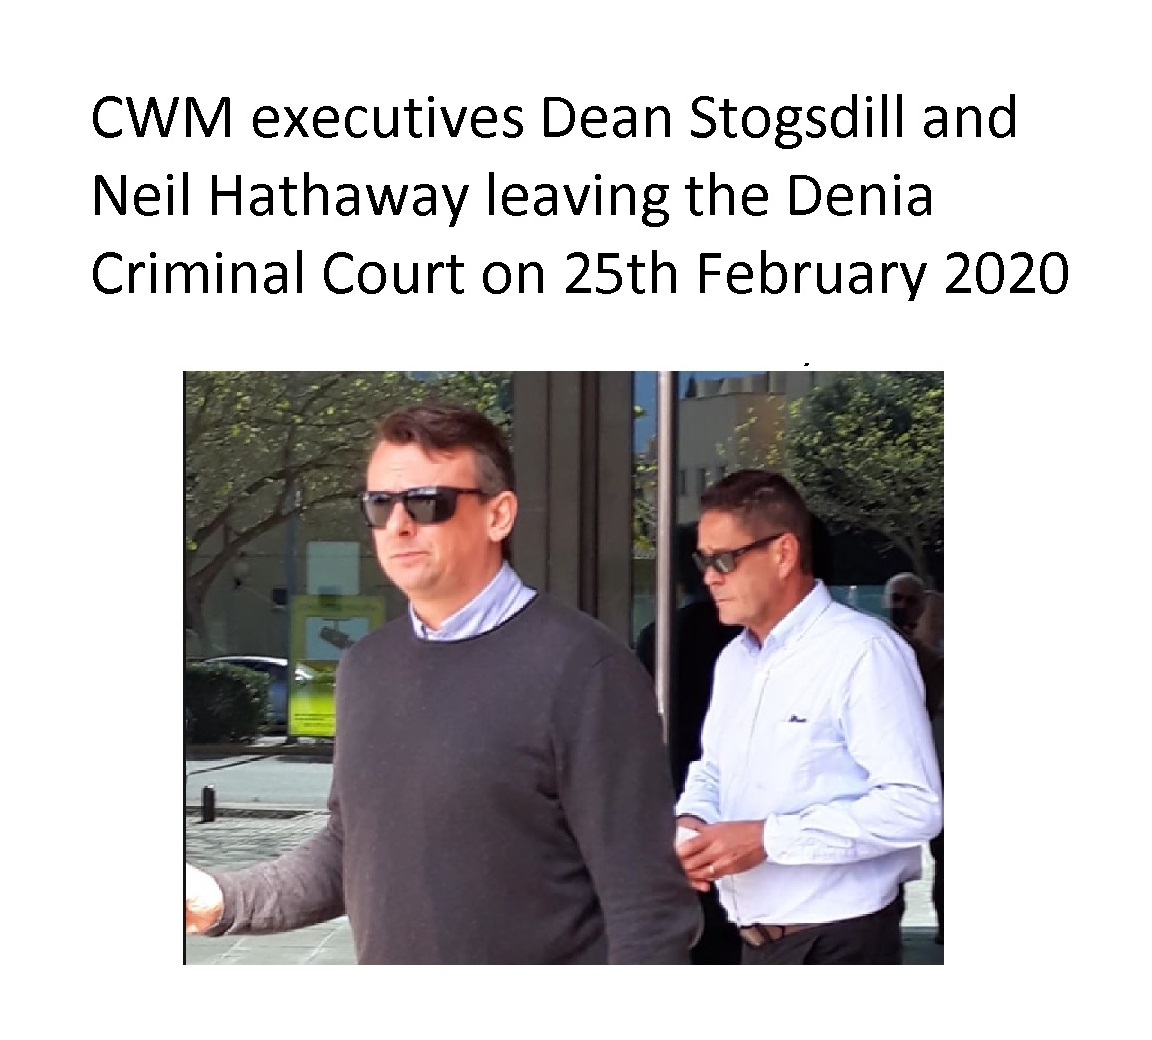 Dean Stogsdill and Neil Hathaway of CWM leaving the Denia Criminal Court on 25th February 2020 after being cross examined on charges of fraud, disloyal administration and falsification of commercial documents.